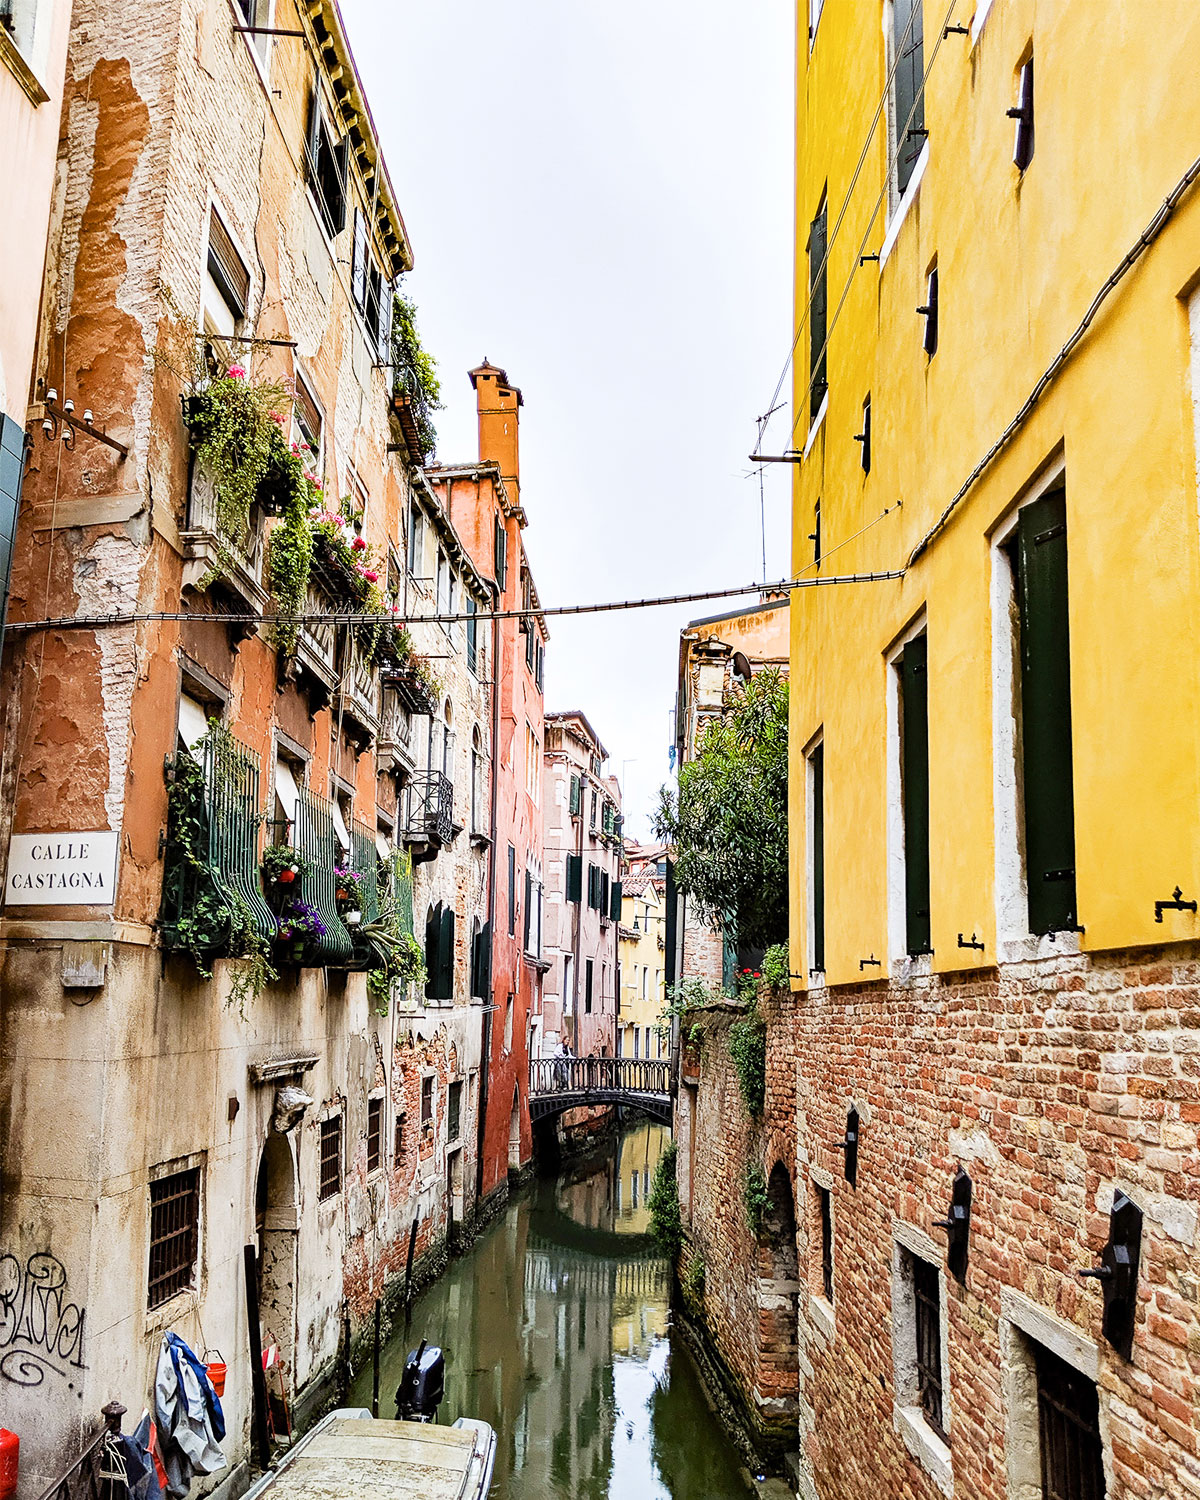 Scenic water channel in Italian city